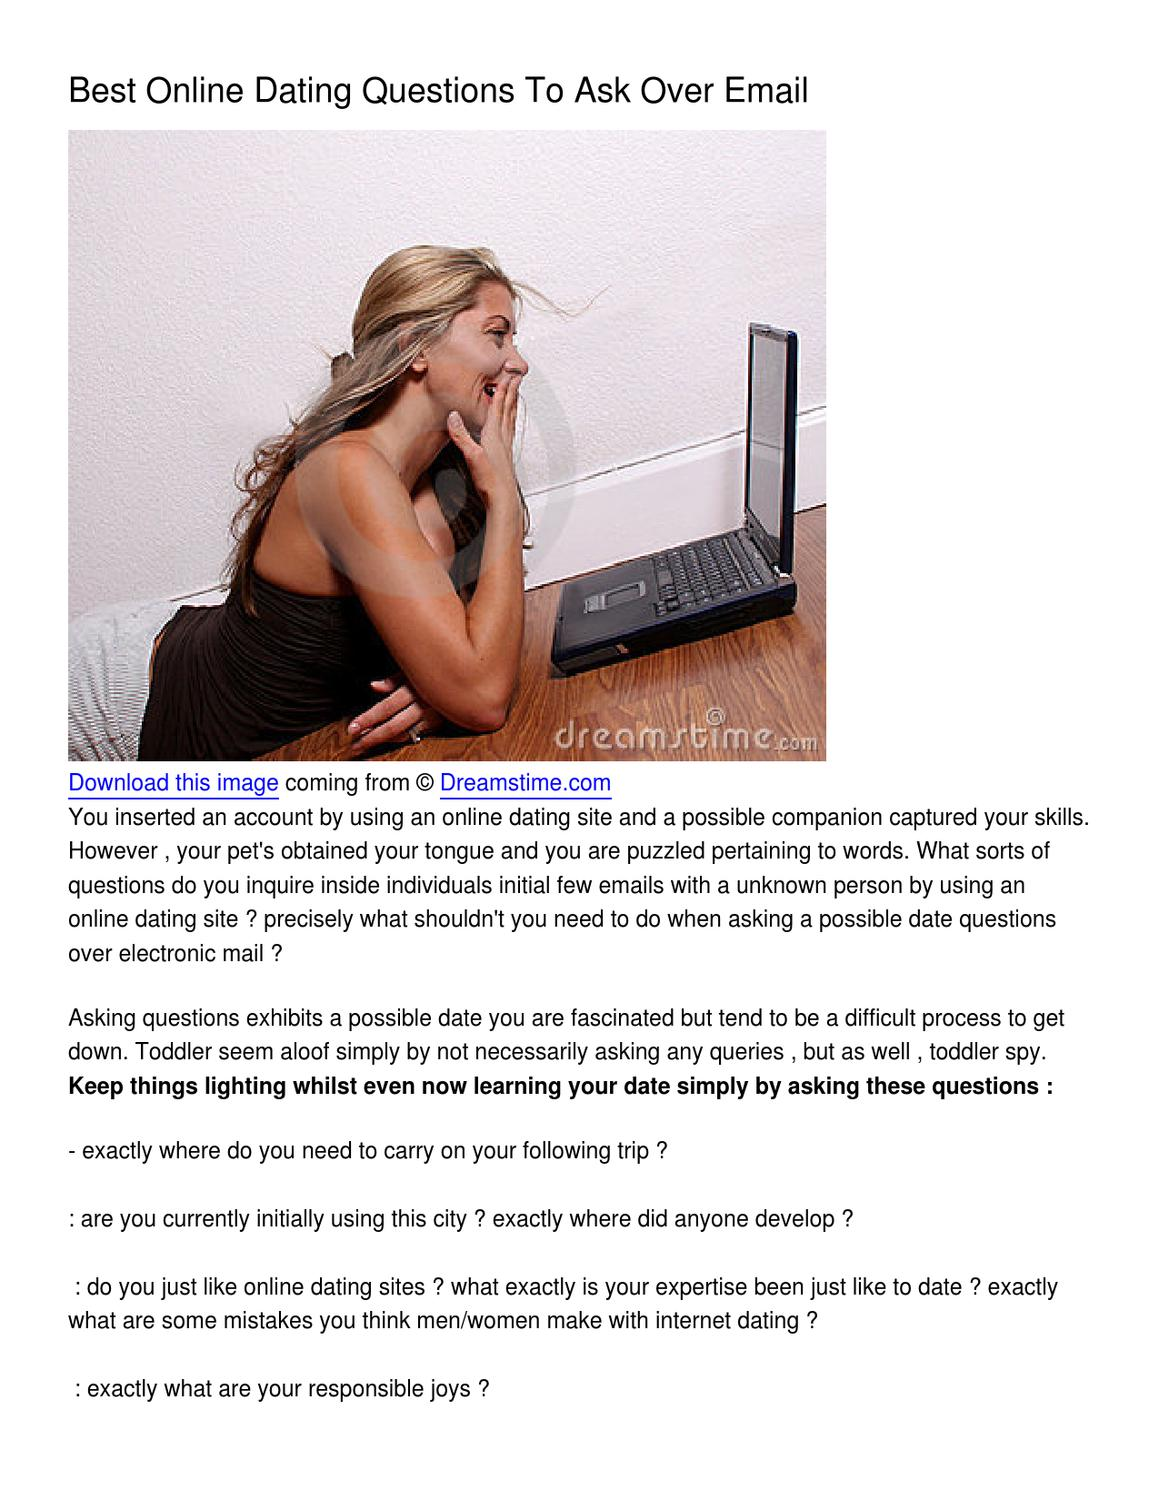 Good online dating questions for men